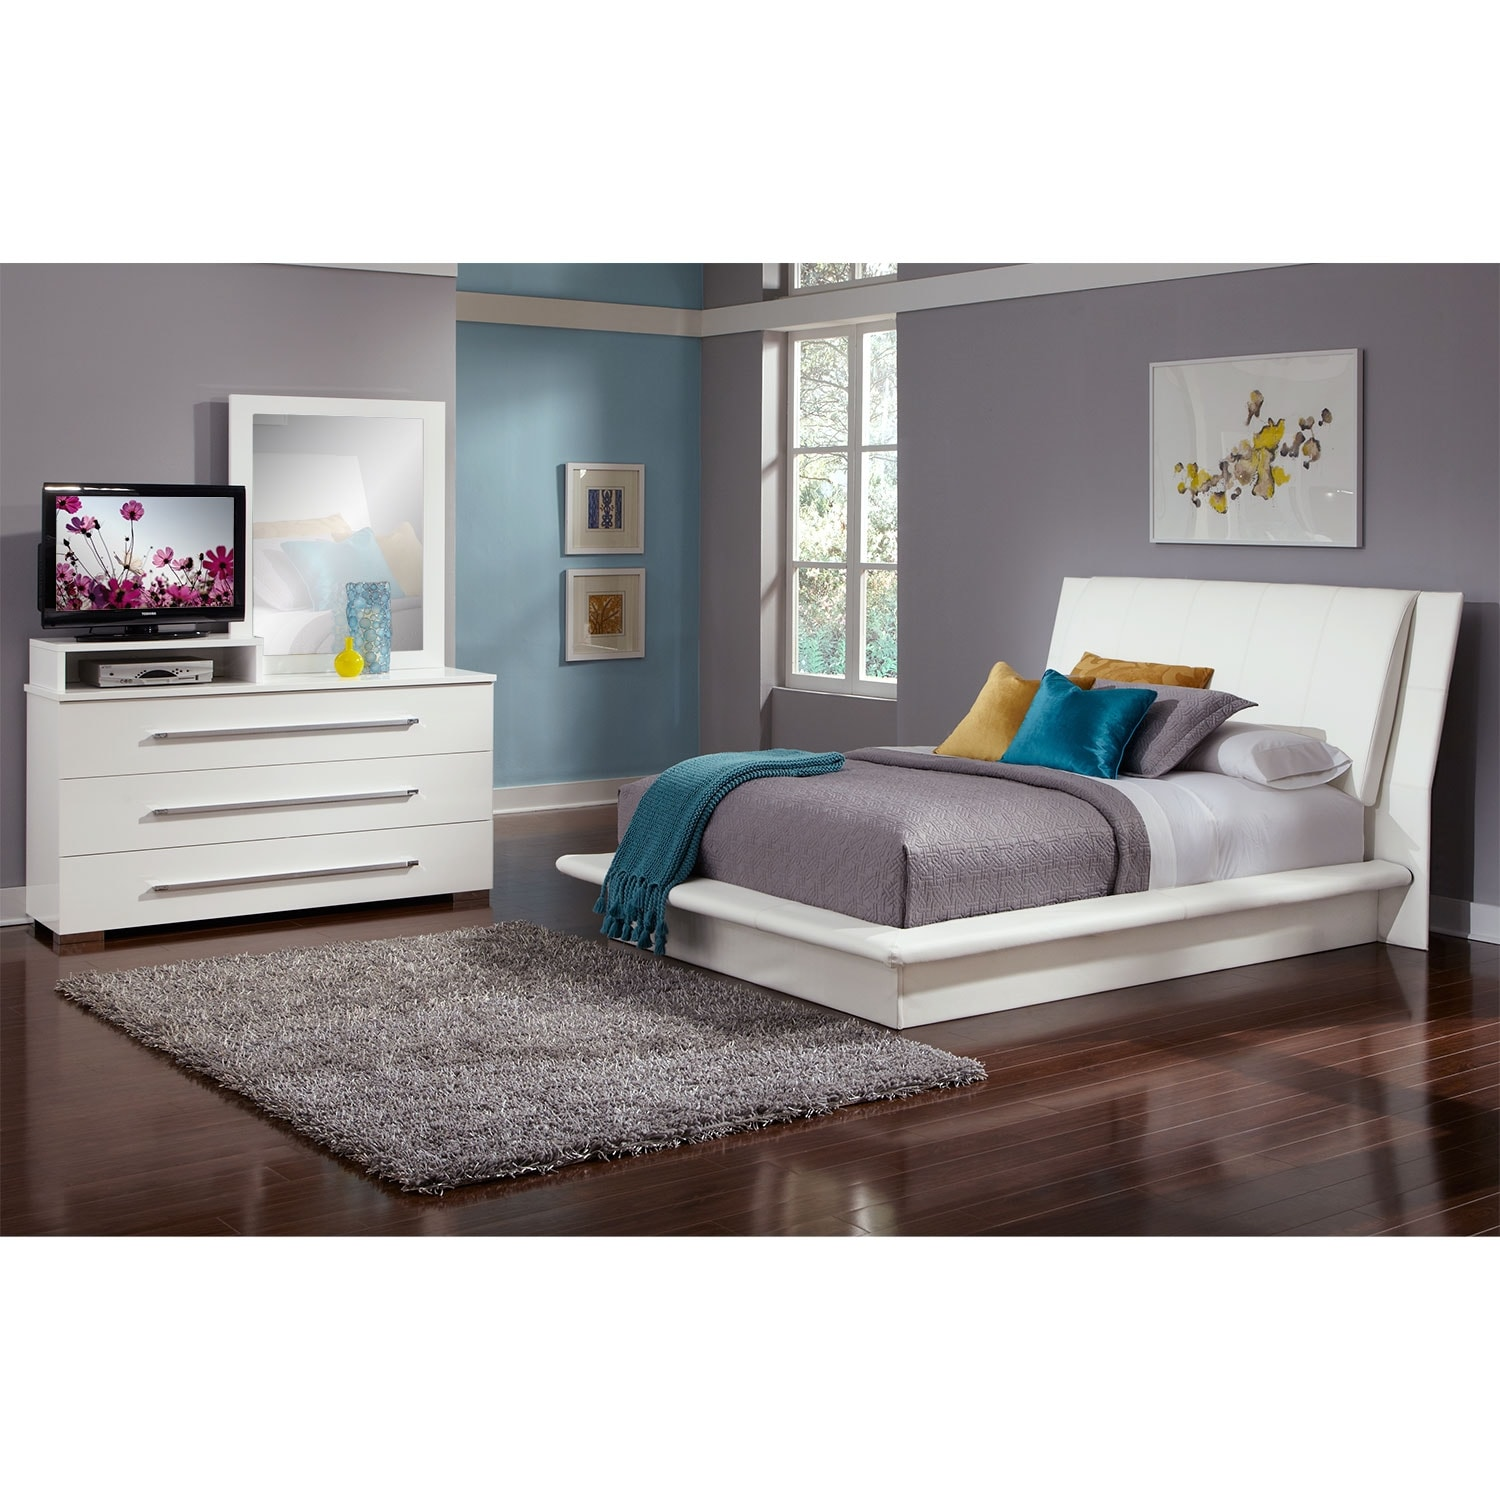 White Queen Bedroom Set : Dimora White 5 Pc. Queen Bedroom  Value City Furniture